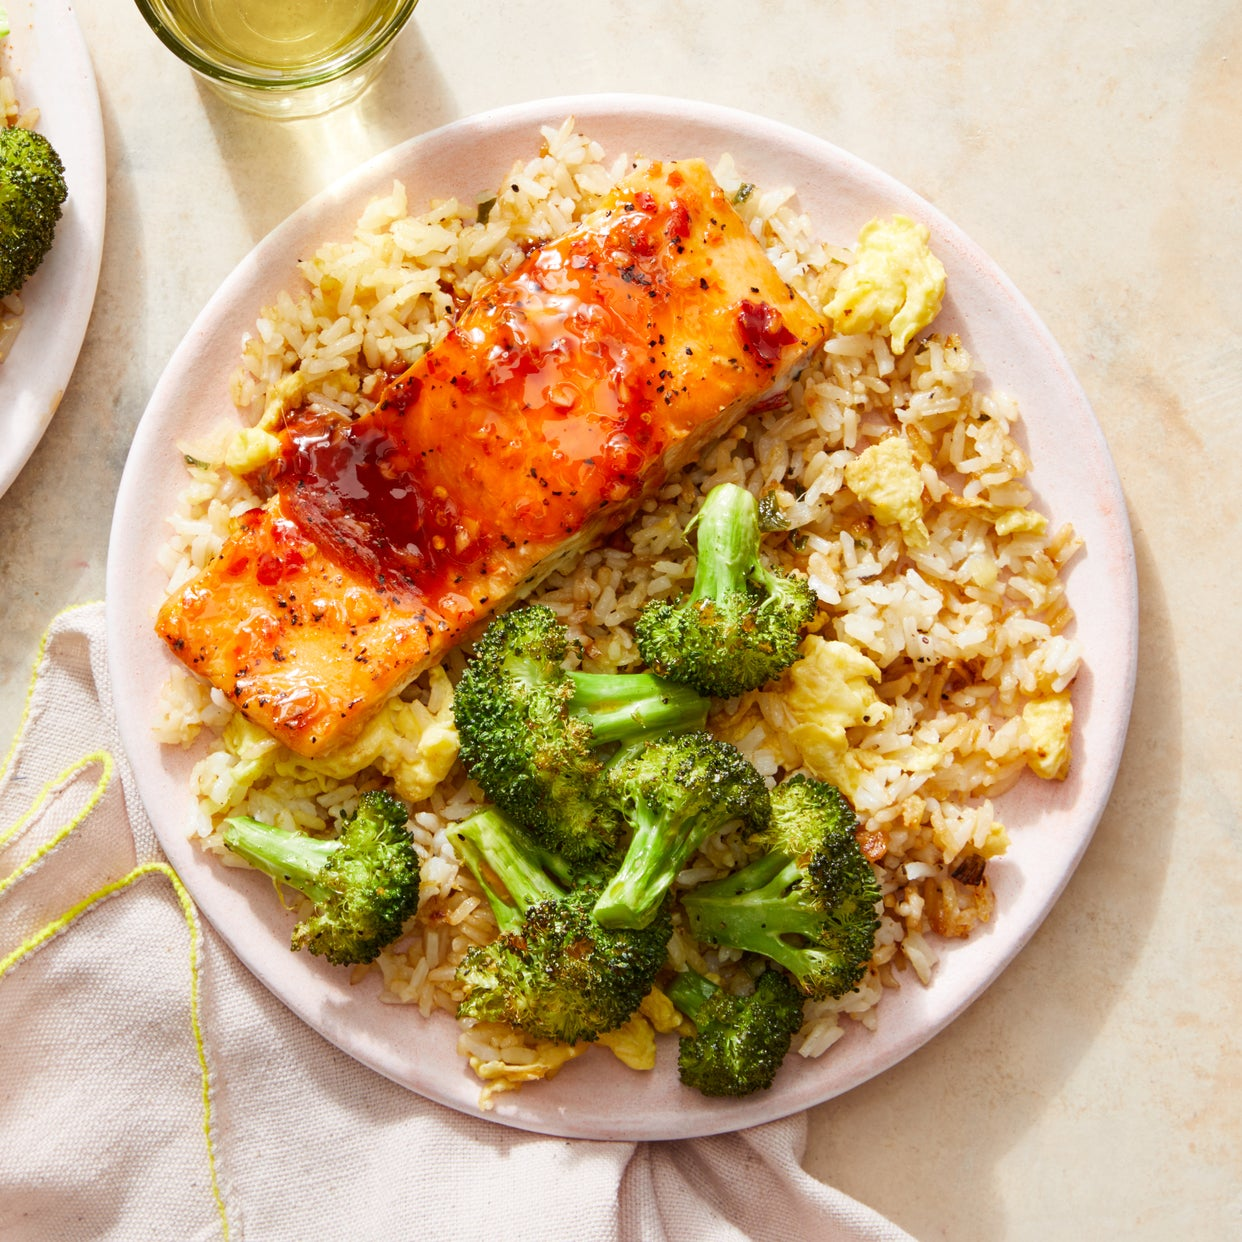 Sweet Chili-Glazed Salmon with Broccoli & Fried Rice